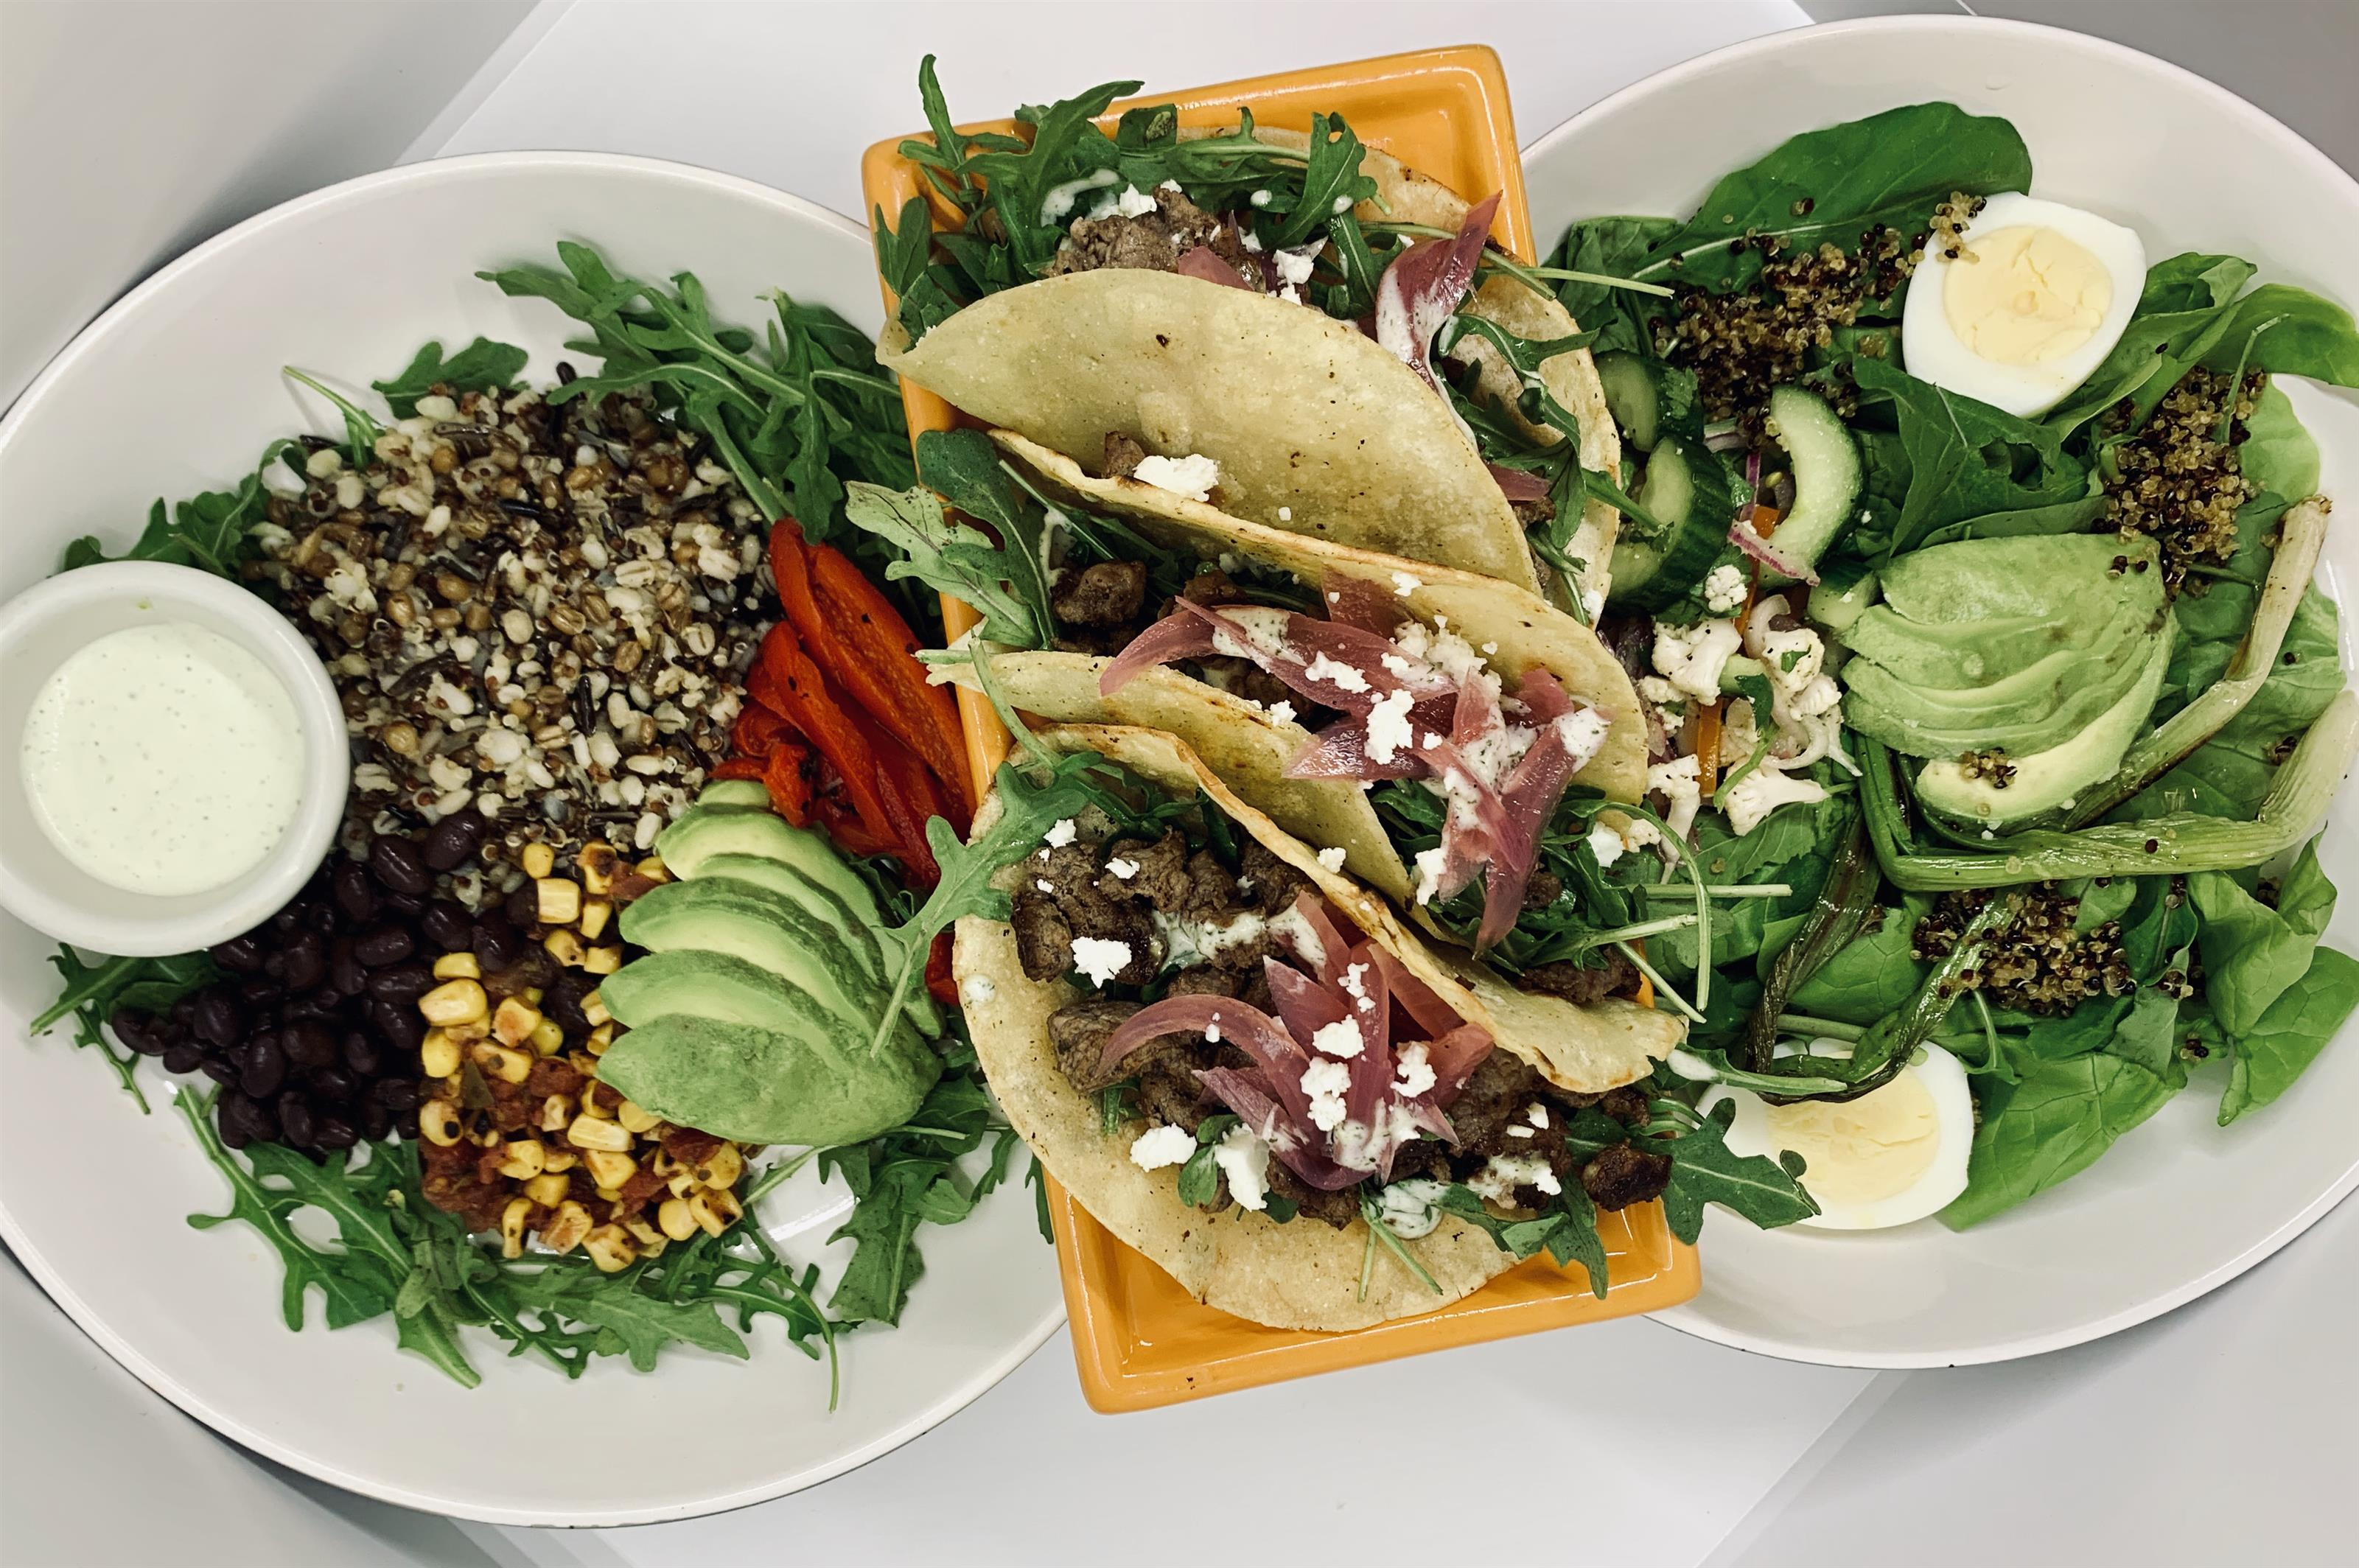 a salad with quinoa, beans, corn, lettuce, avocado, red peppers, and a white dressing. a salad with spinach, quinoa, cucumbers, avocado, and egg. 3 soft tacos with meat, cheese, and arugula.